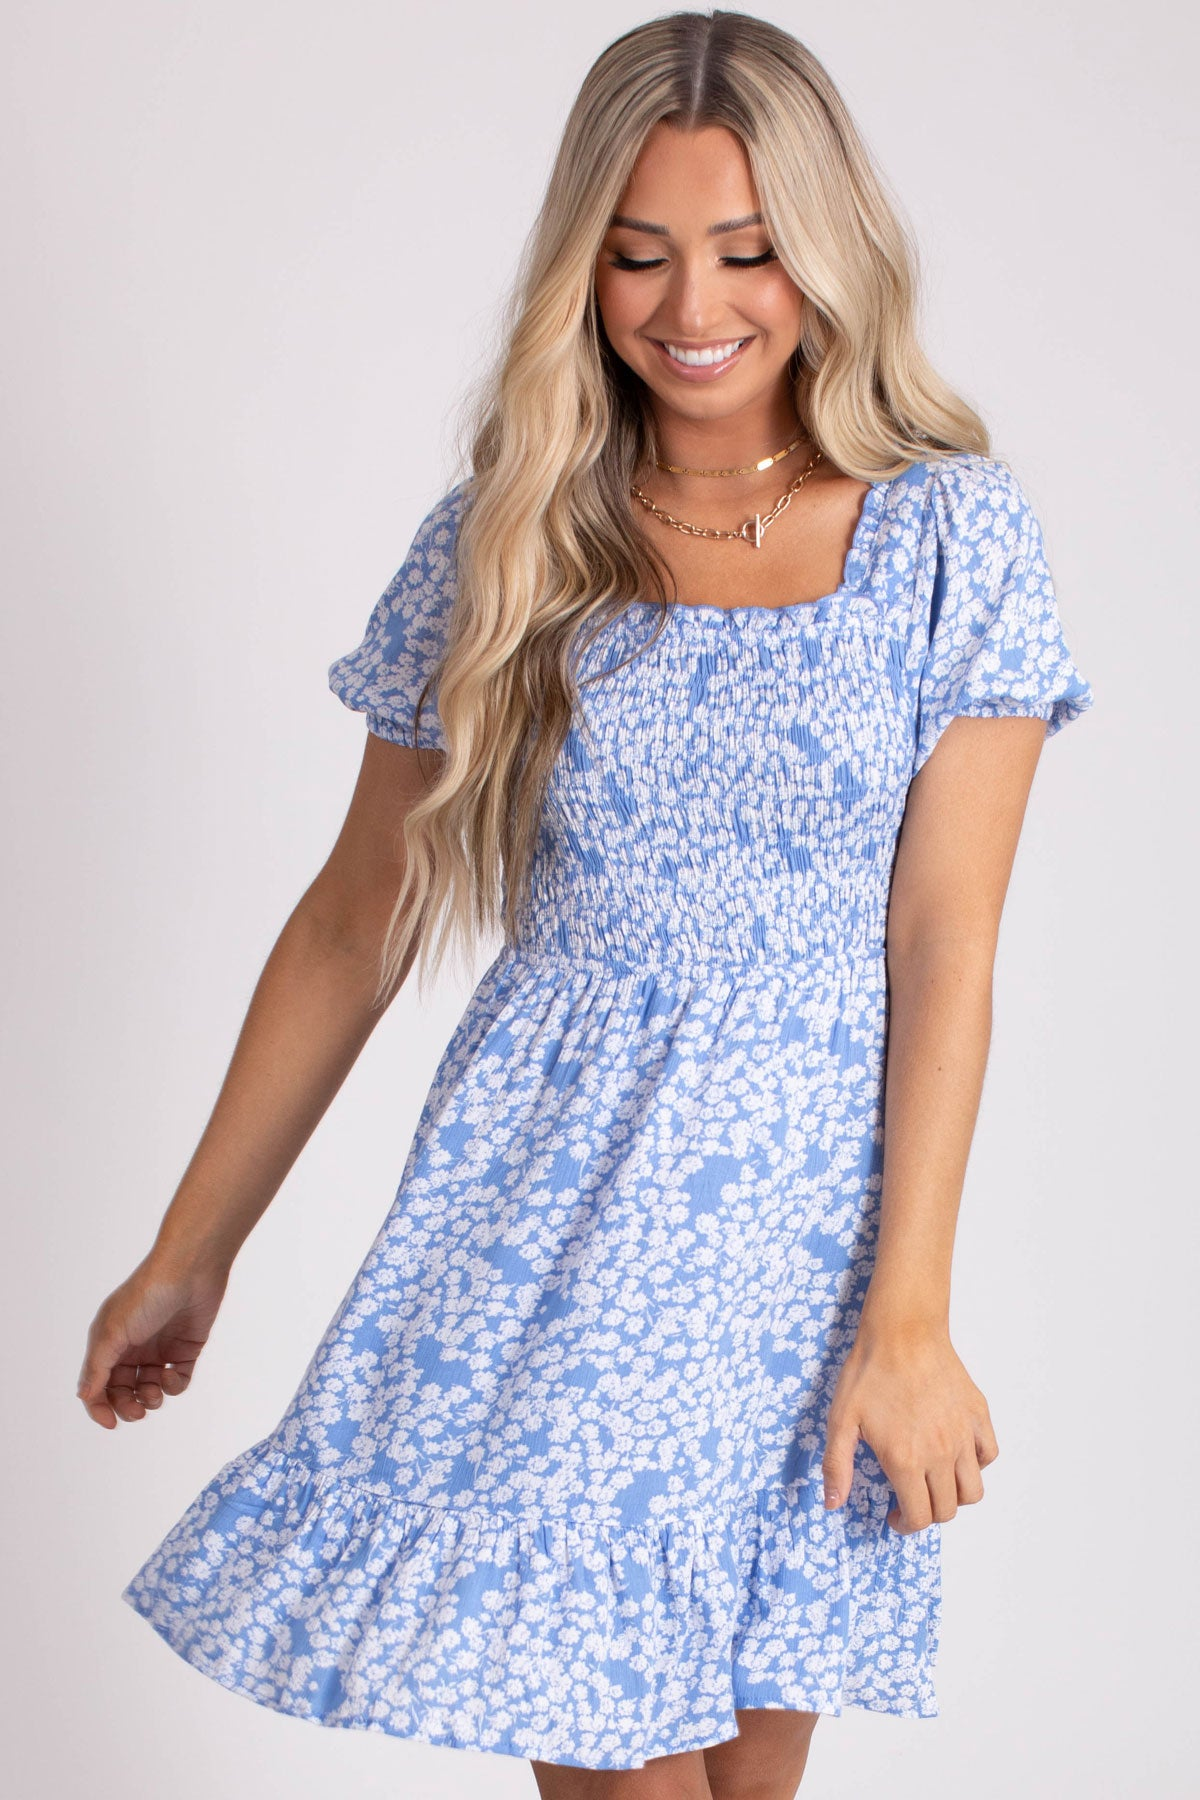 Women's Cute and Comfortable Boutique Dress